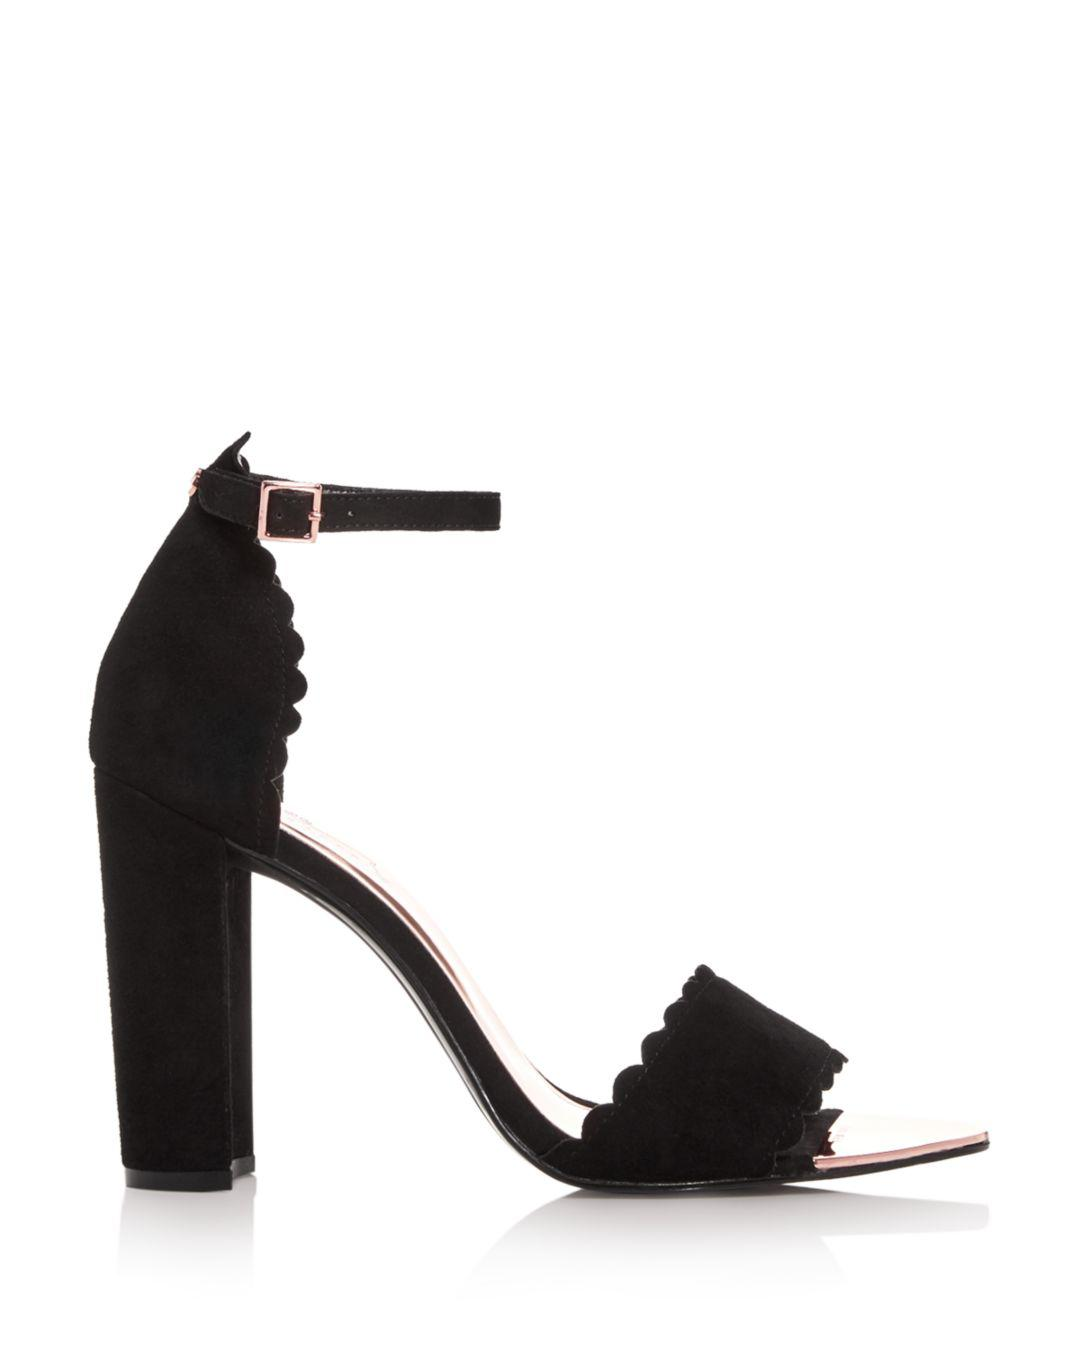 46816fd85 Lyst - Ted Baker Women s Raidha Scalloped High Block-heel Sandals in Black